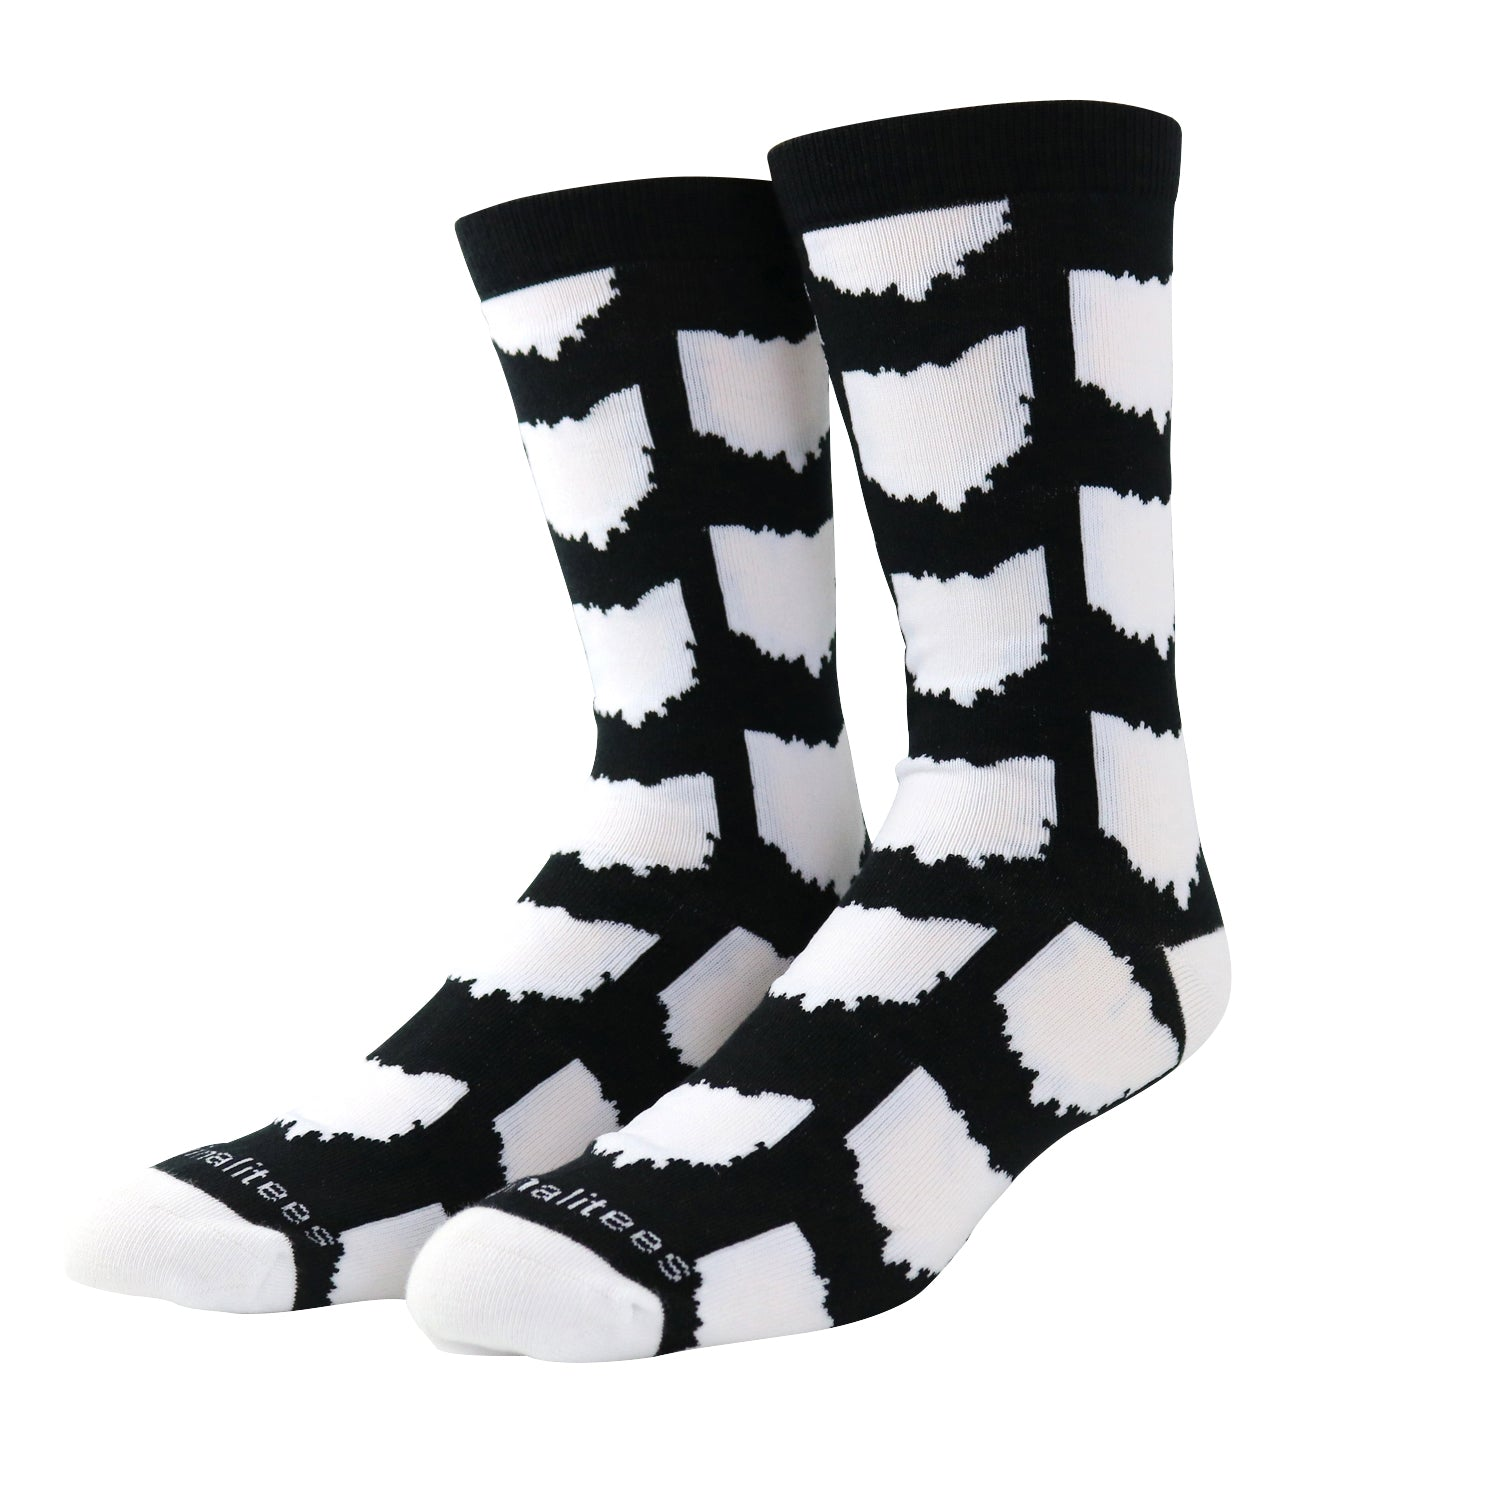 All Over OH Socks - Black/White